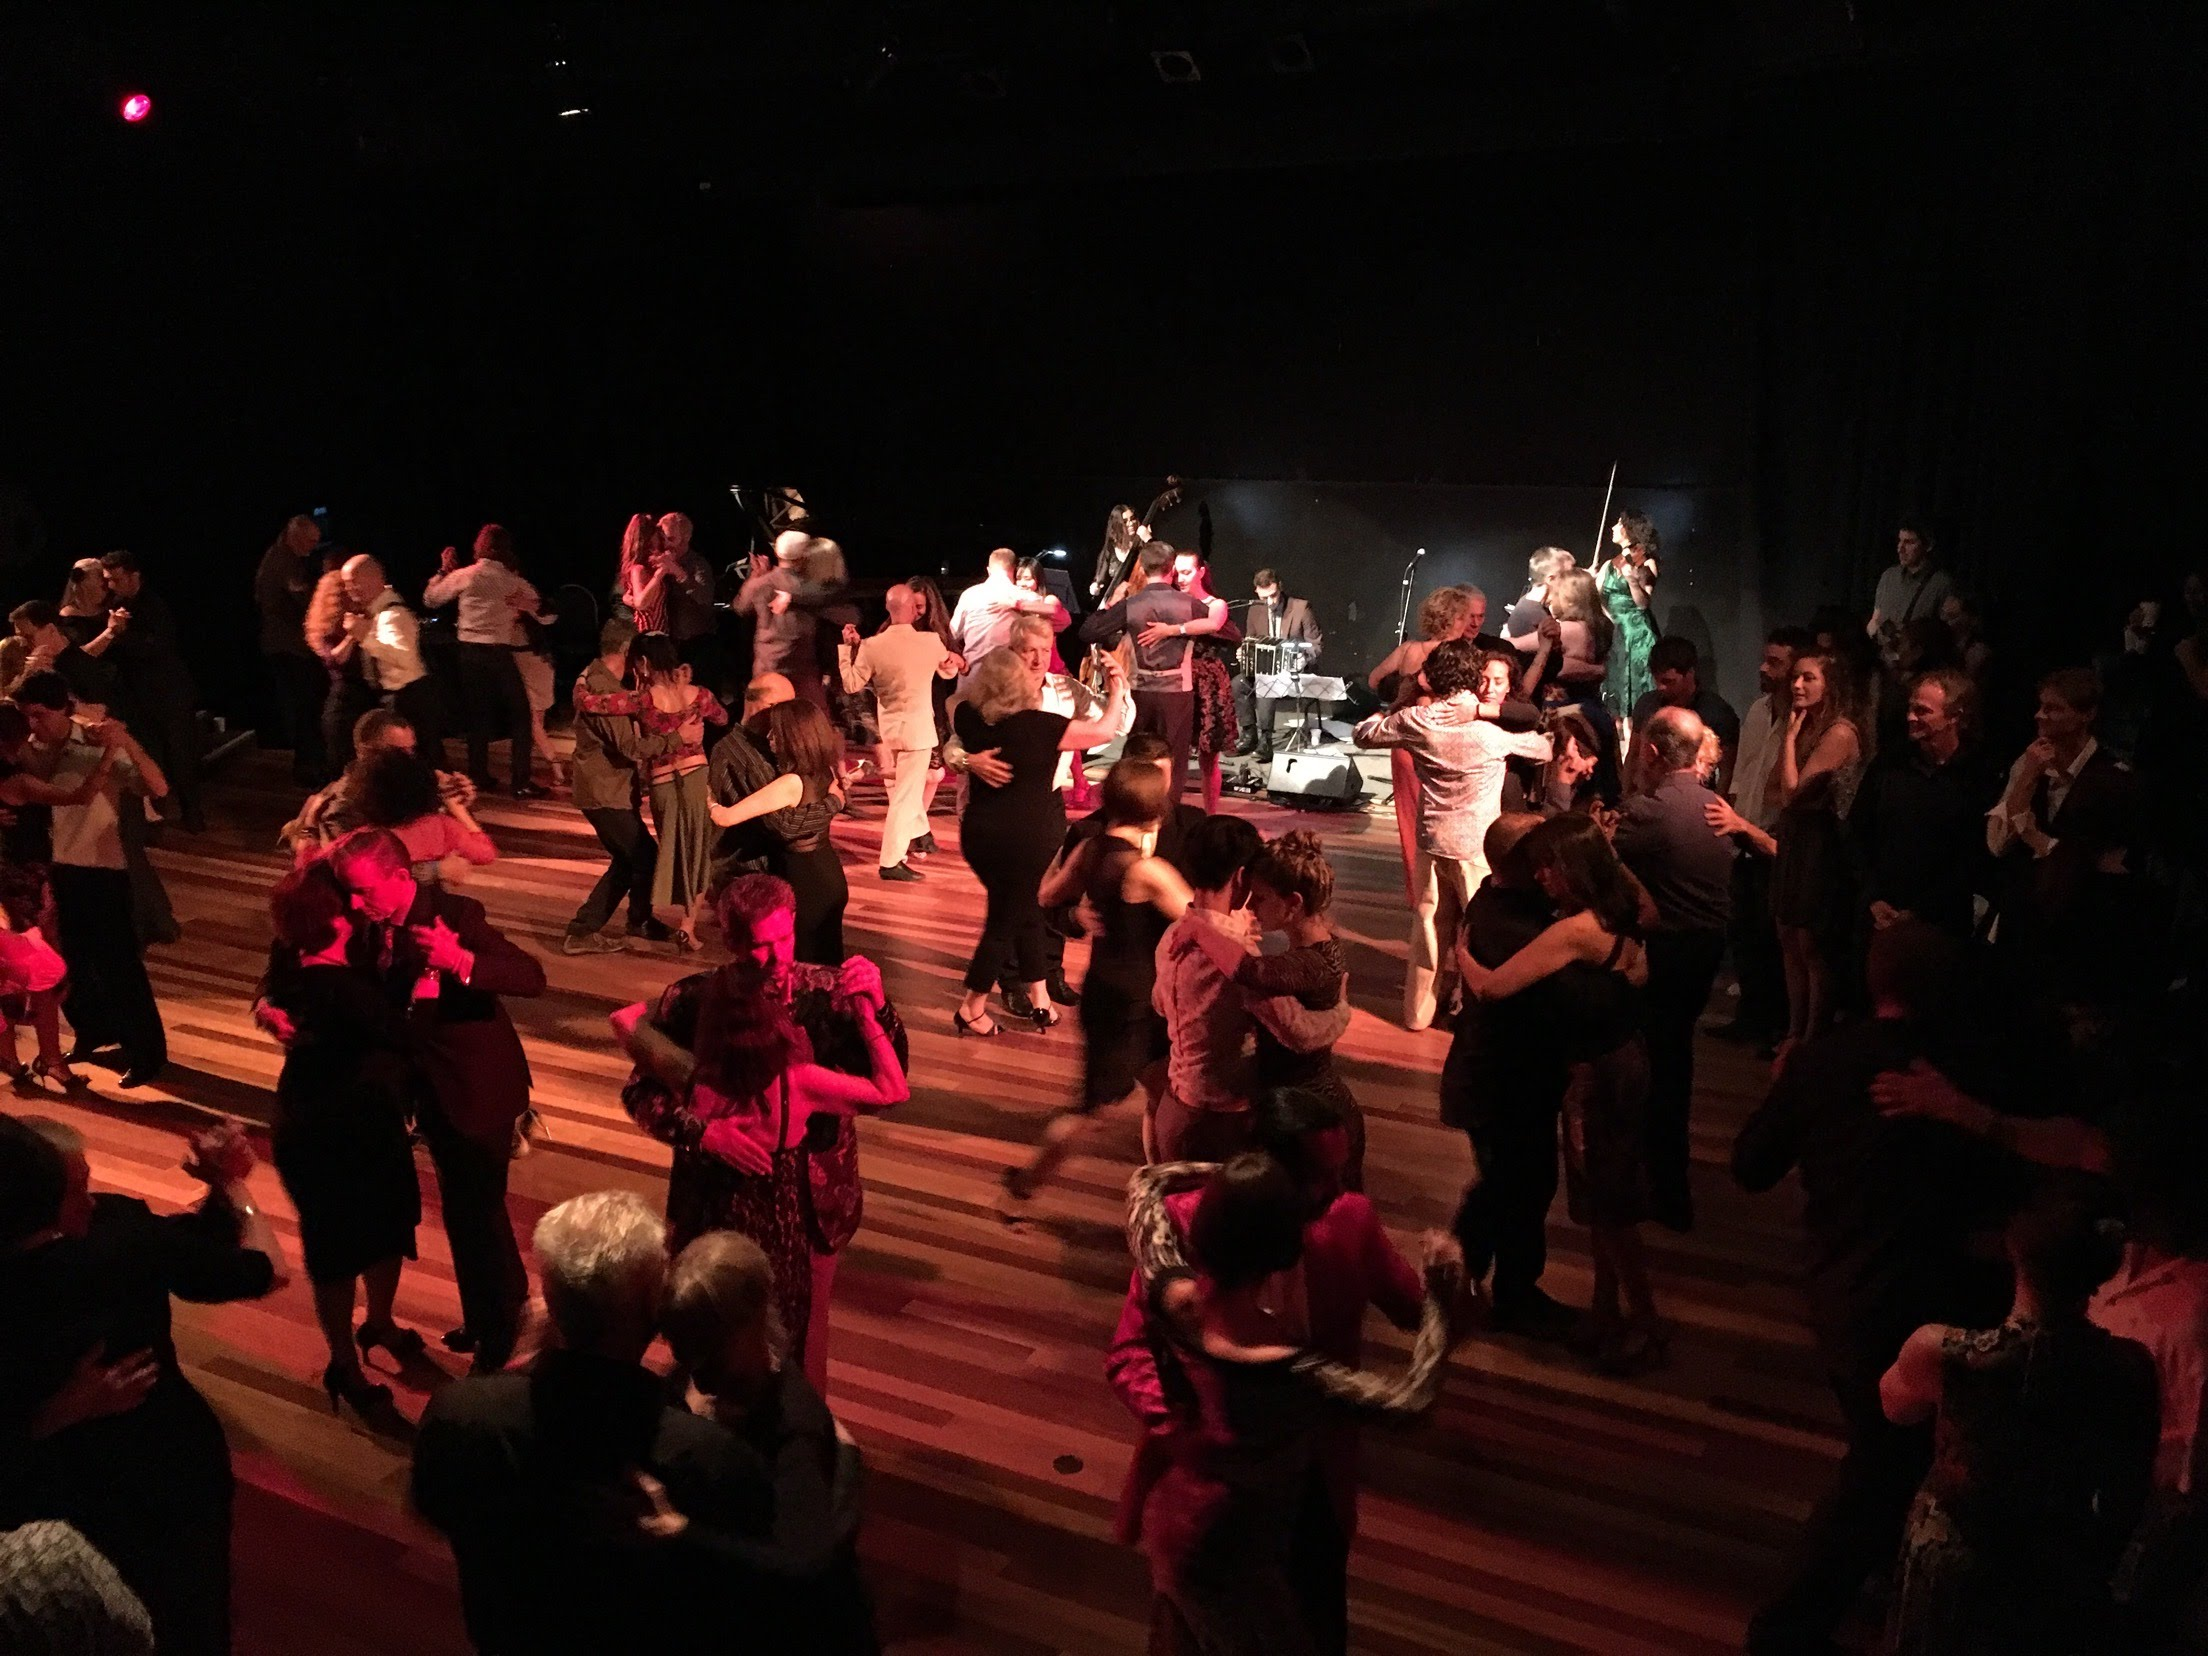 north sydney bondi tango lessons studio classes best